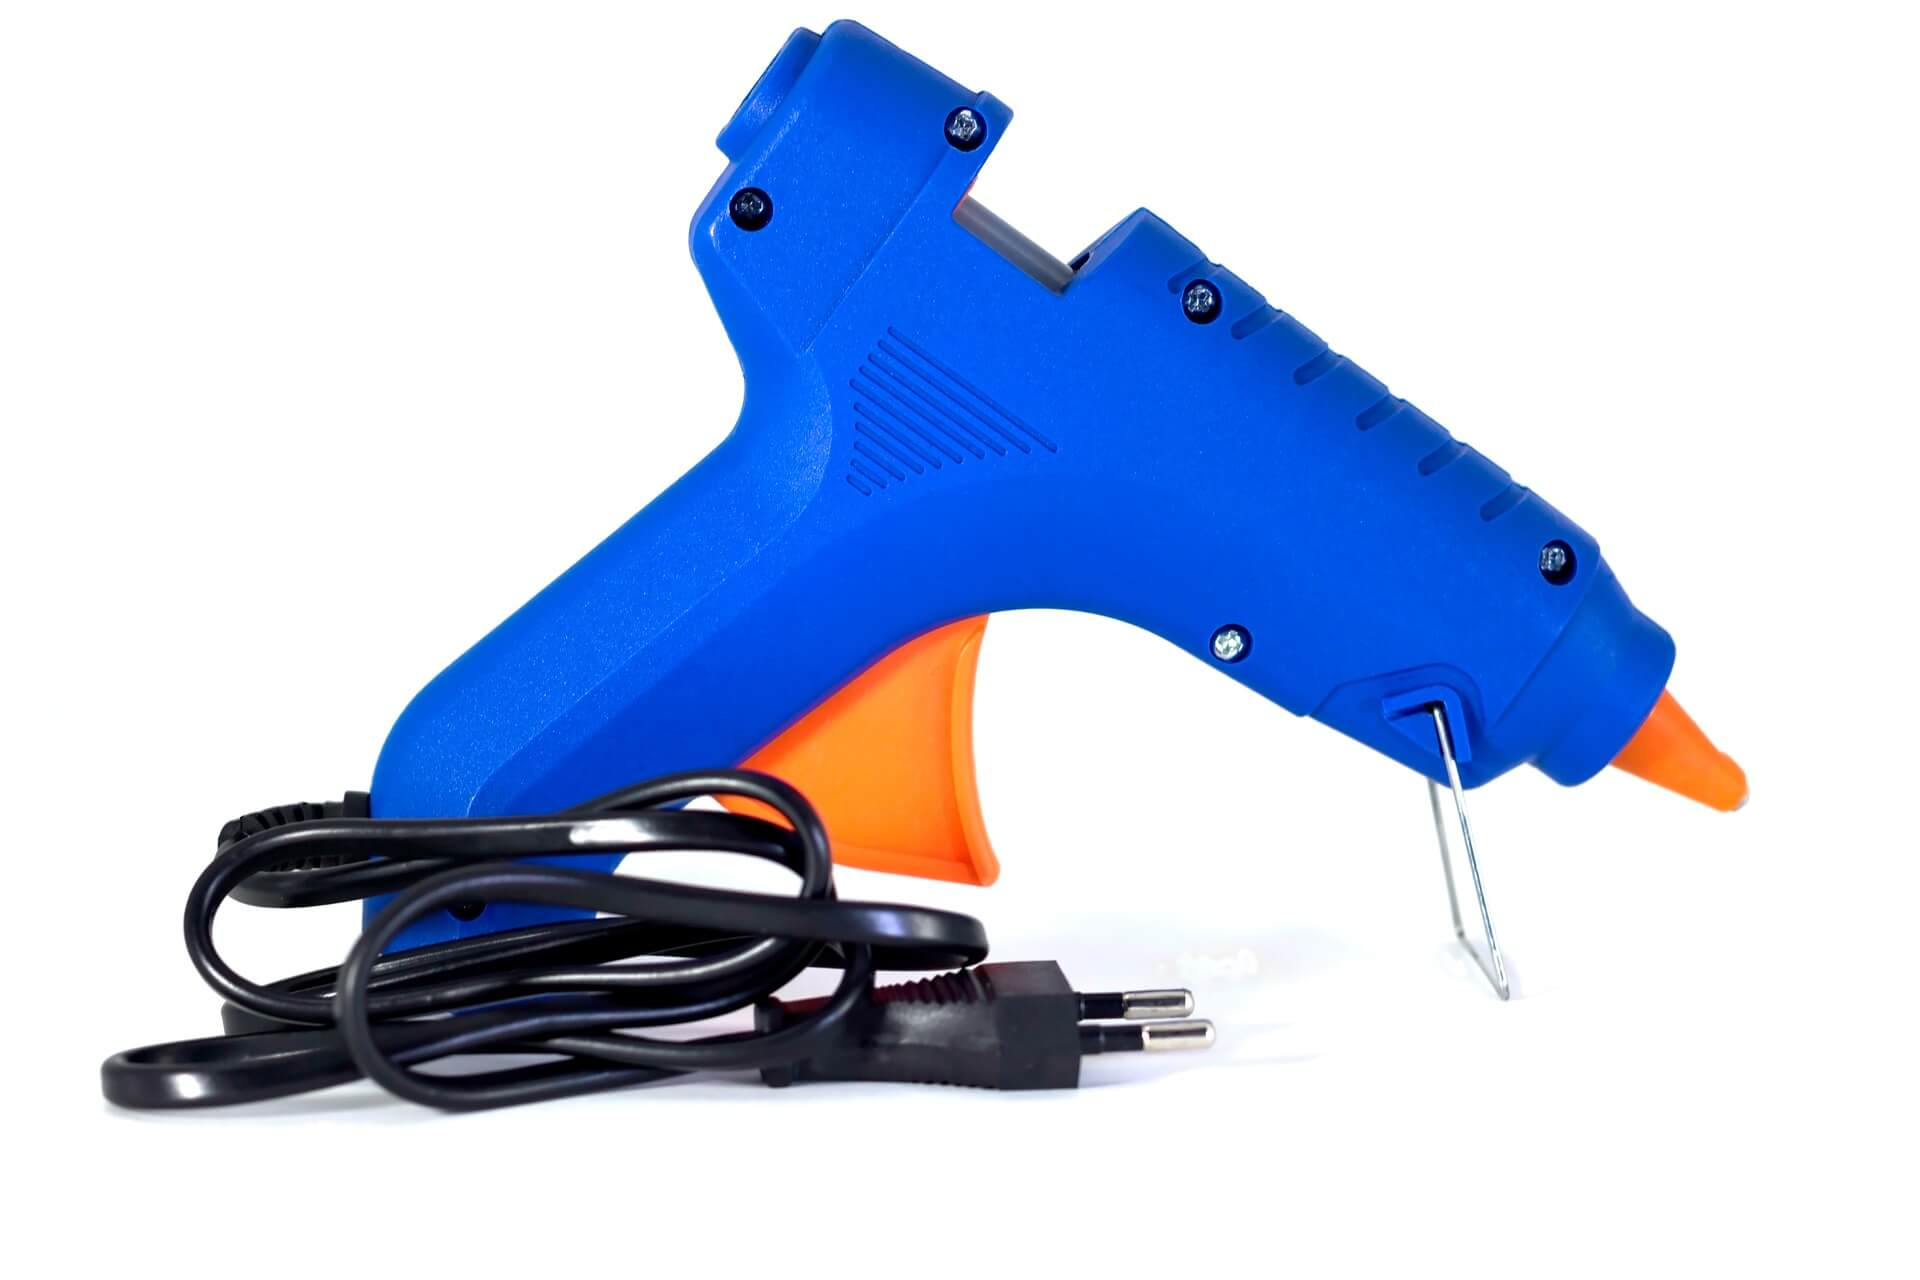 What is the best hot glue gun?